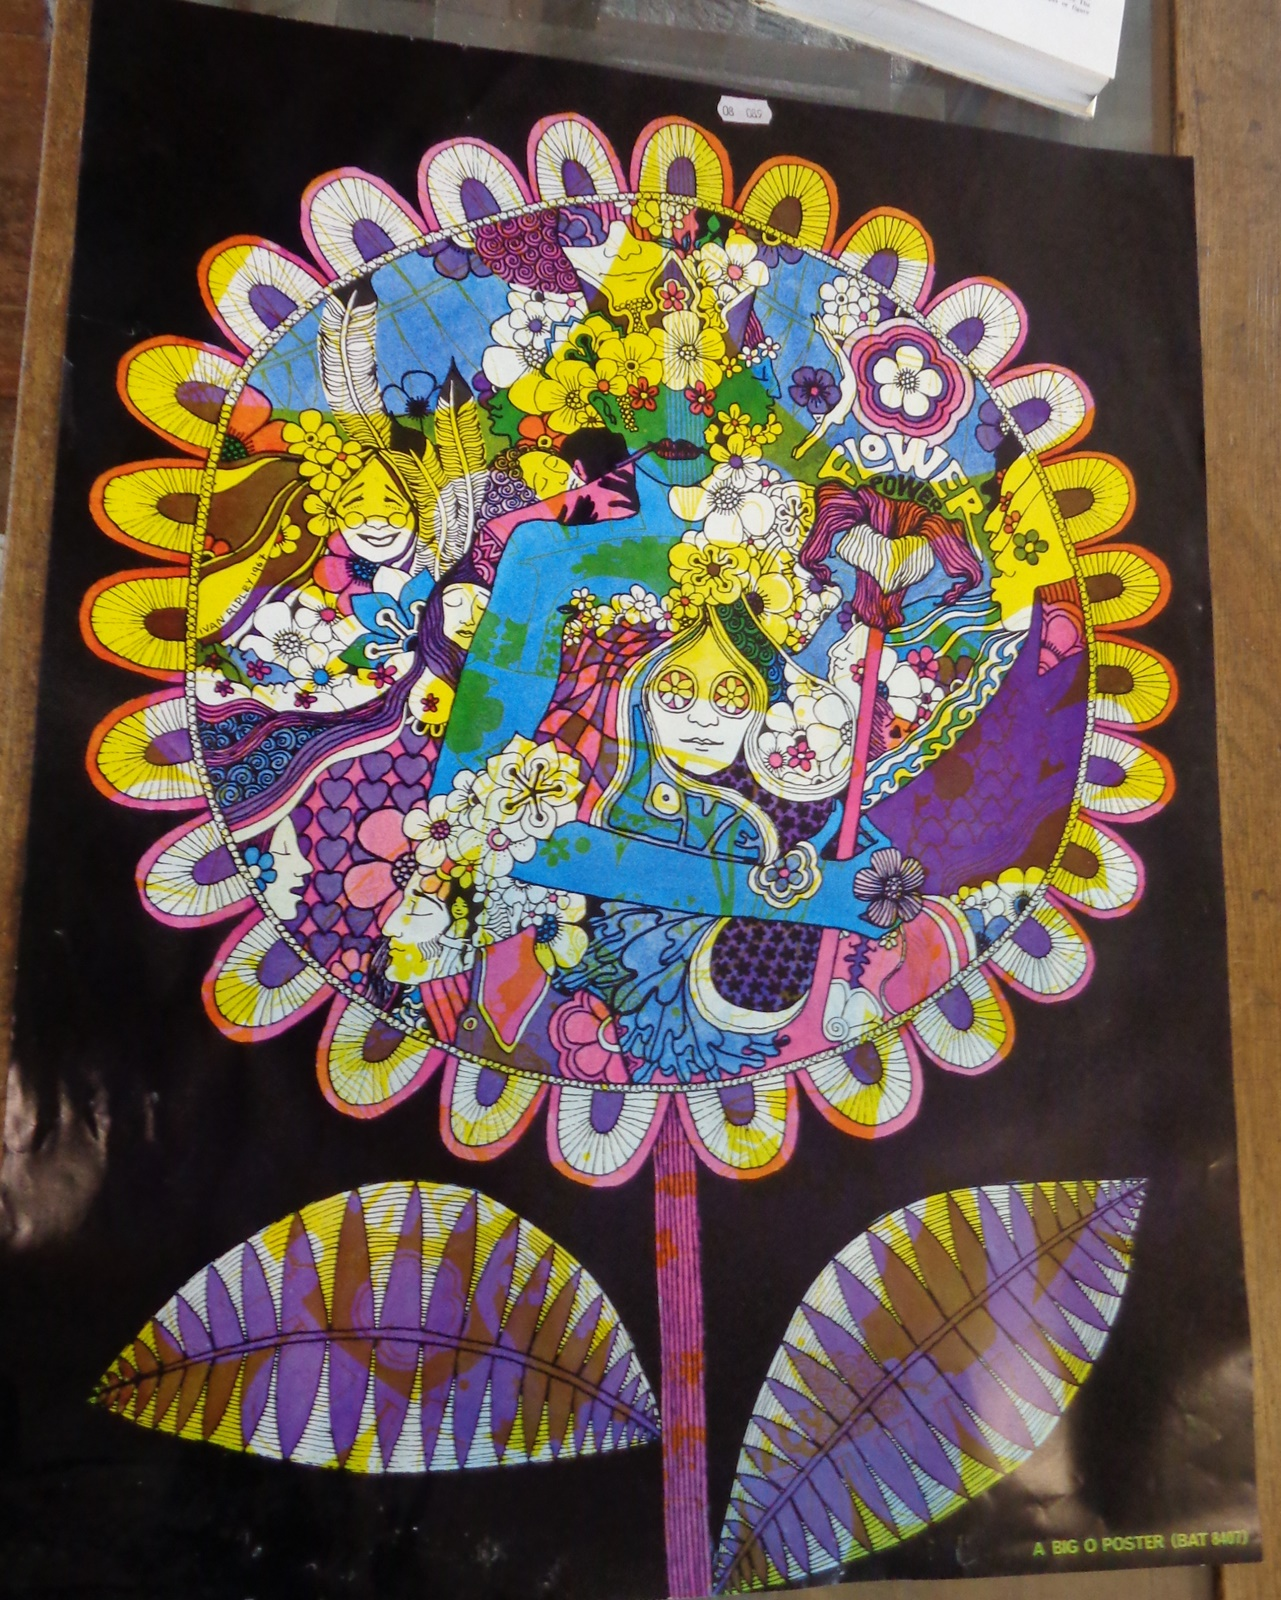 Lot 122 - 1960's psychedelic flower power Rock poster by Ivan Ripley